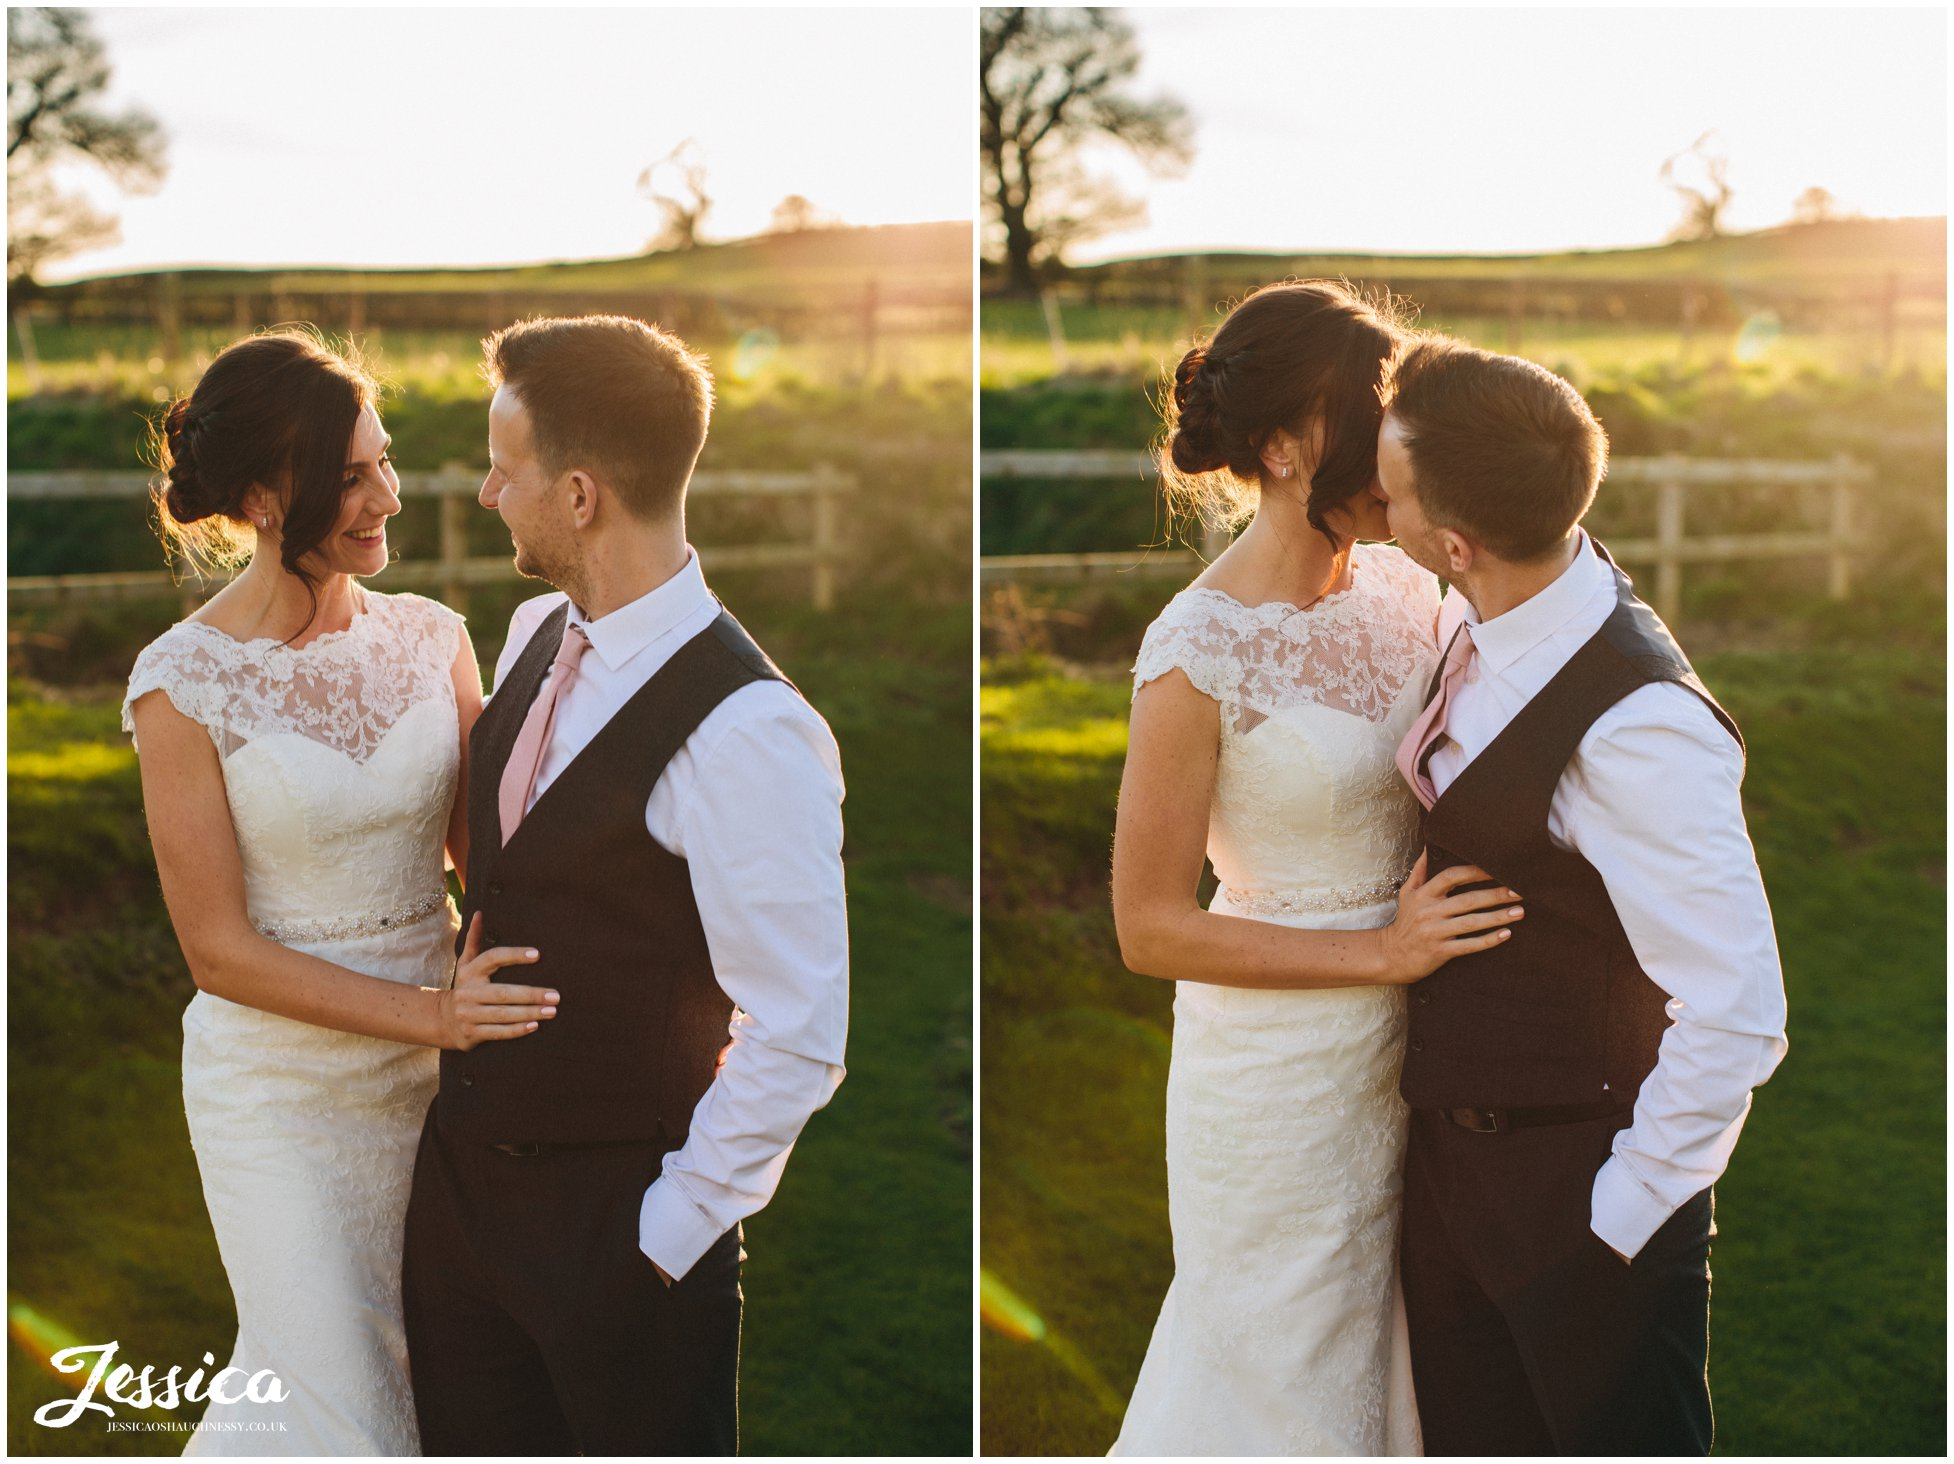 couple embrace on their wedding day in wrexham, north wales